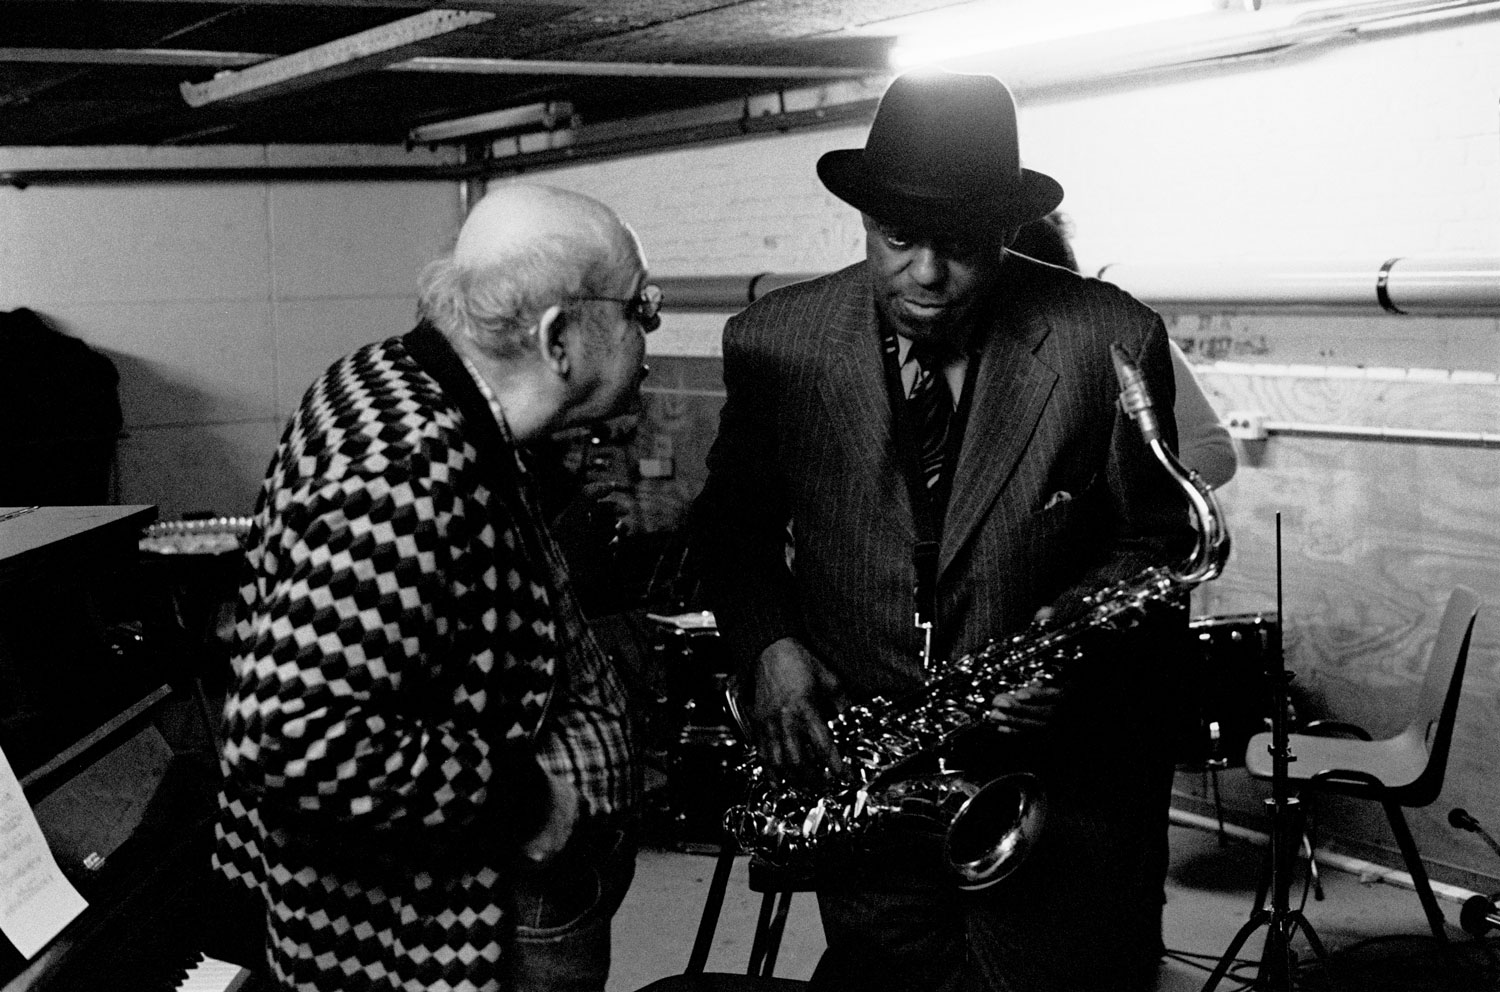 Misha Mengelberg and Archie Shepp, Backstage at the Oude Schans Bimhuis, on 30 November 2009